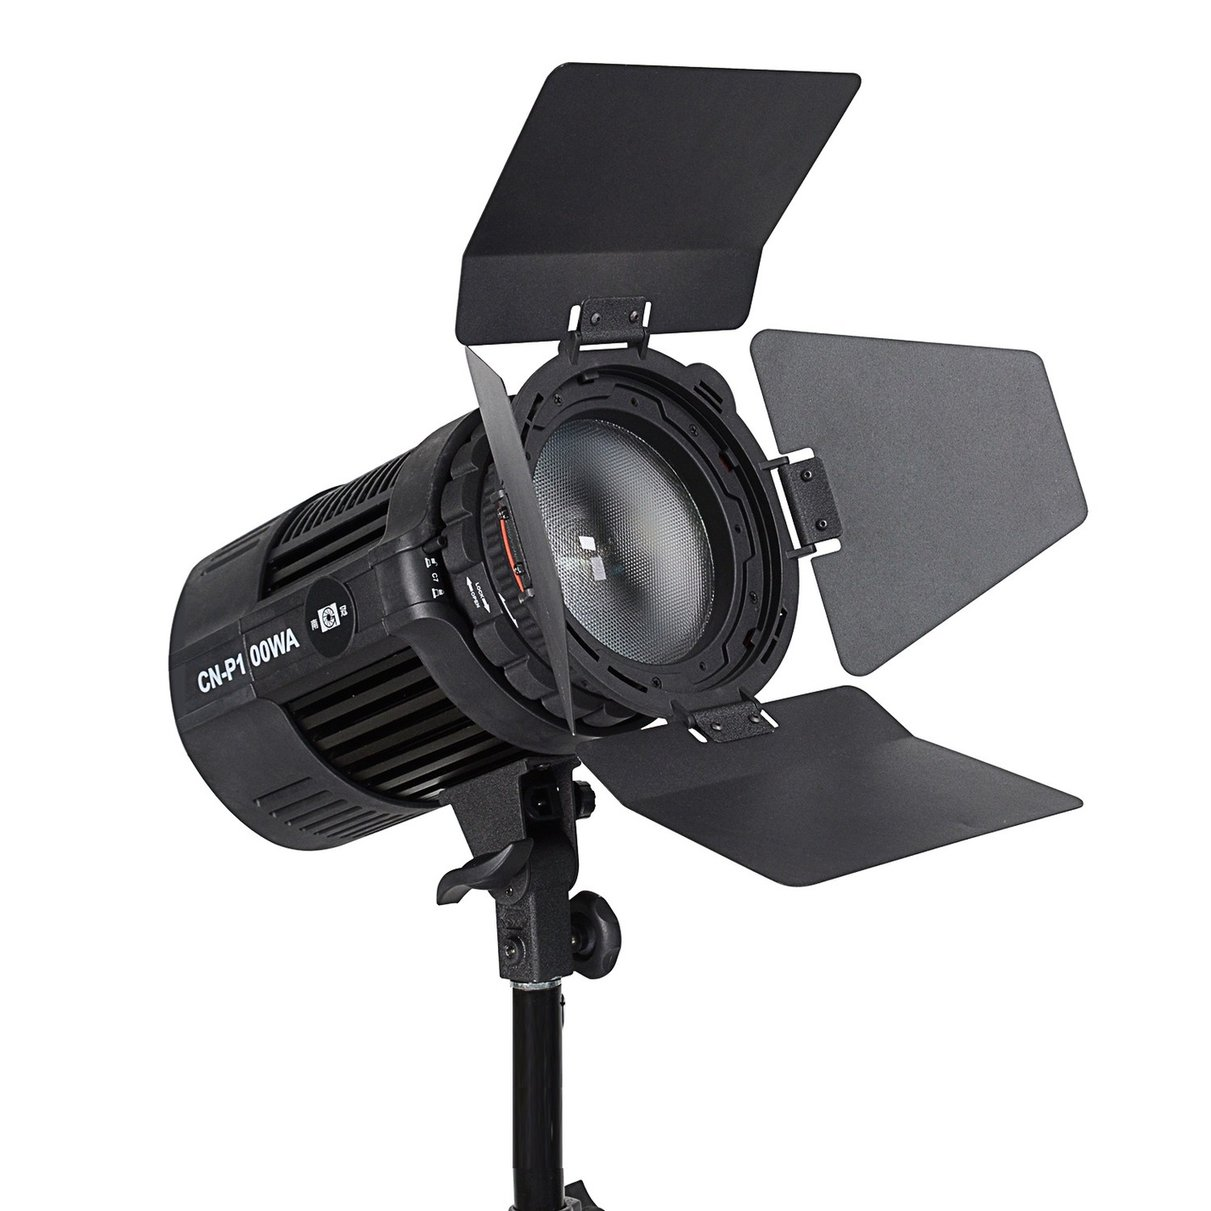 Nanguang P100WA CN- P100WA 100W professional Radio wireless COB LED studio light spotlight nanguang cn lux2400 100v 240v